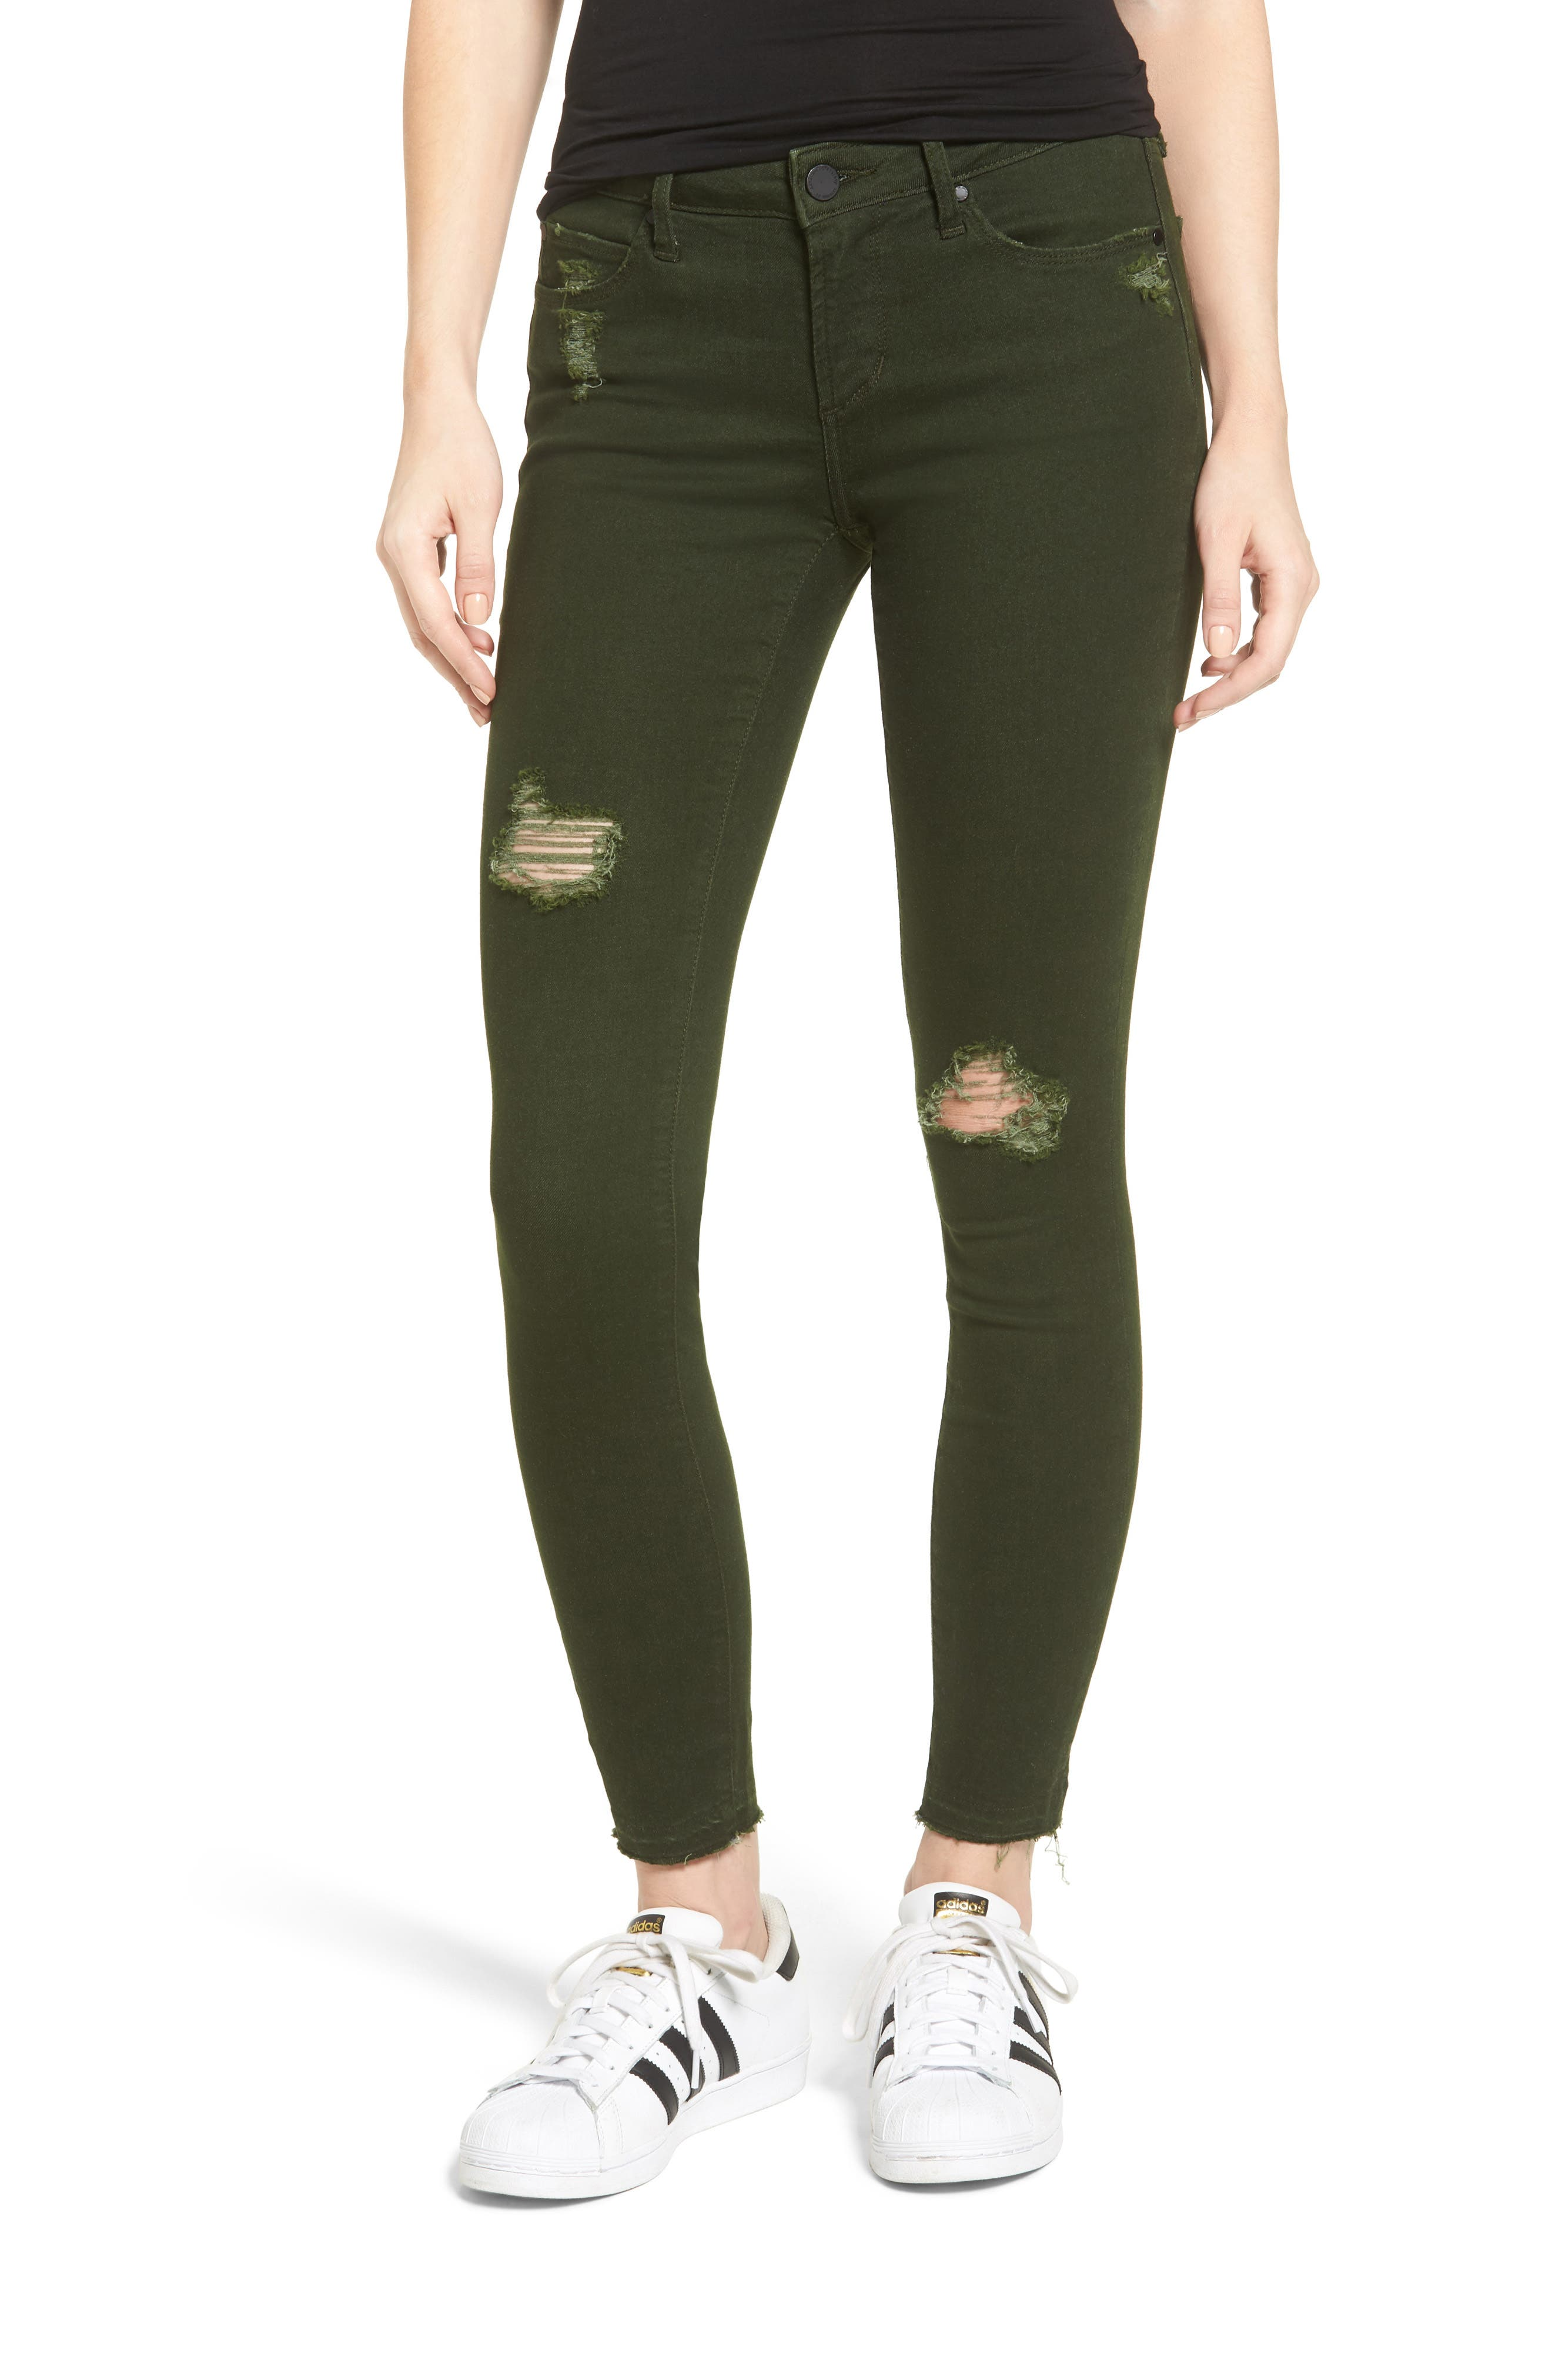 Articles of Society Sarah Released Hem Skinny Jeans (Murry Green)